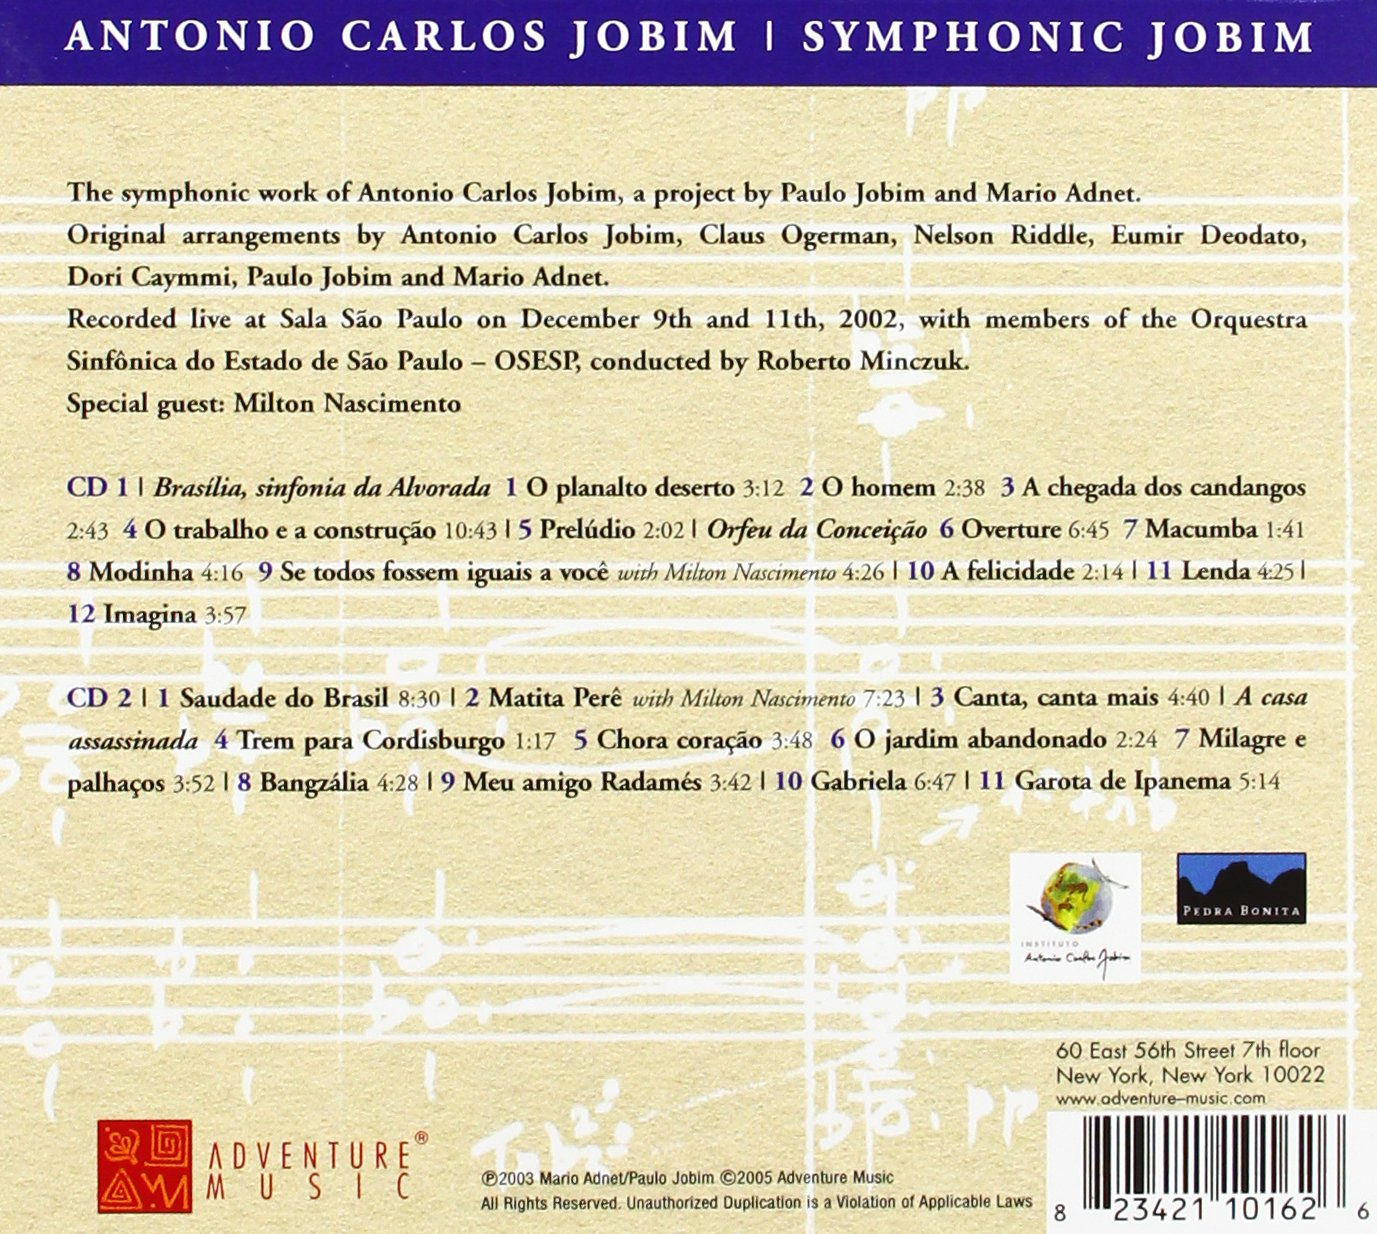 Symphonic Jobim (Jobim Sinfônico) by Adventure Music